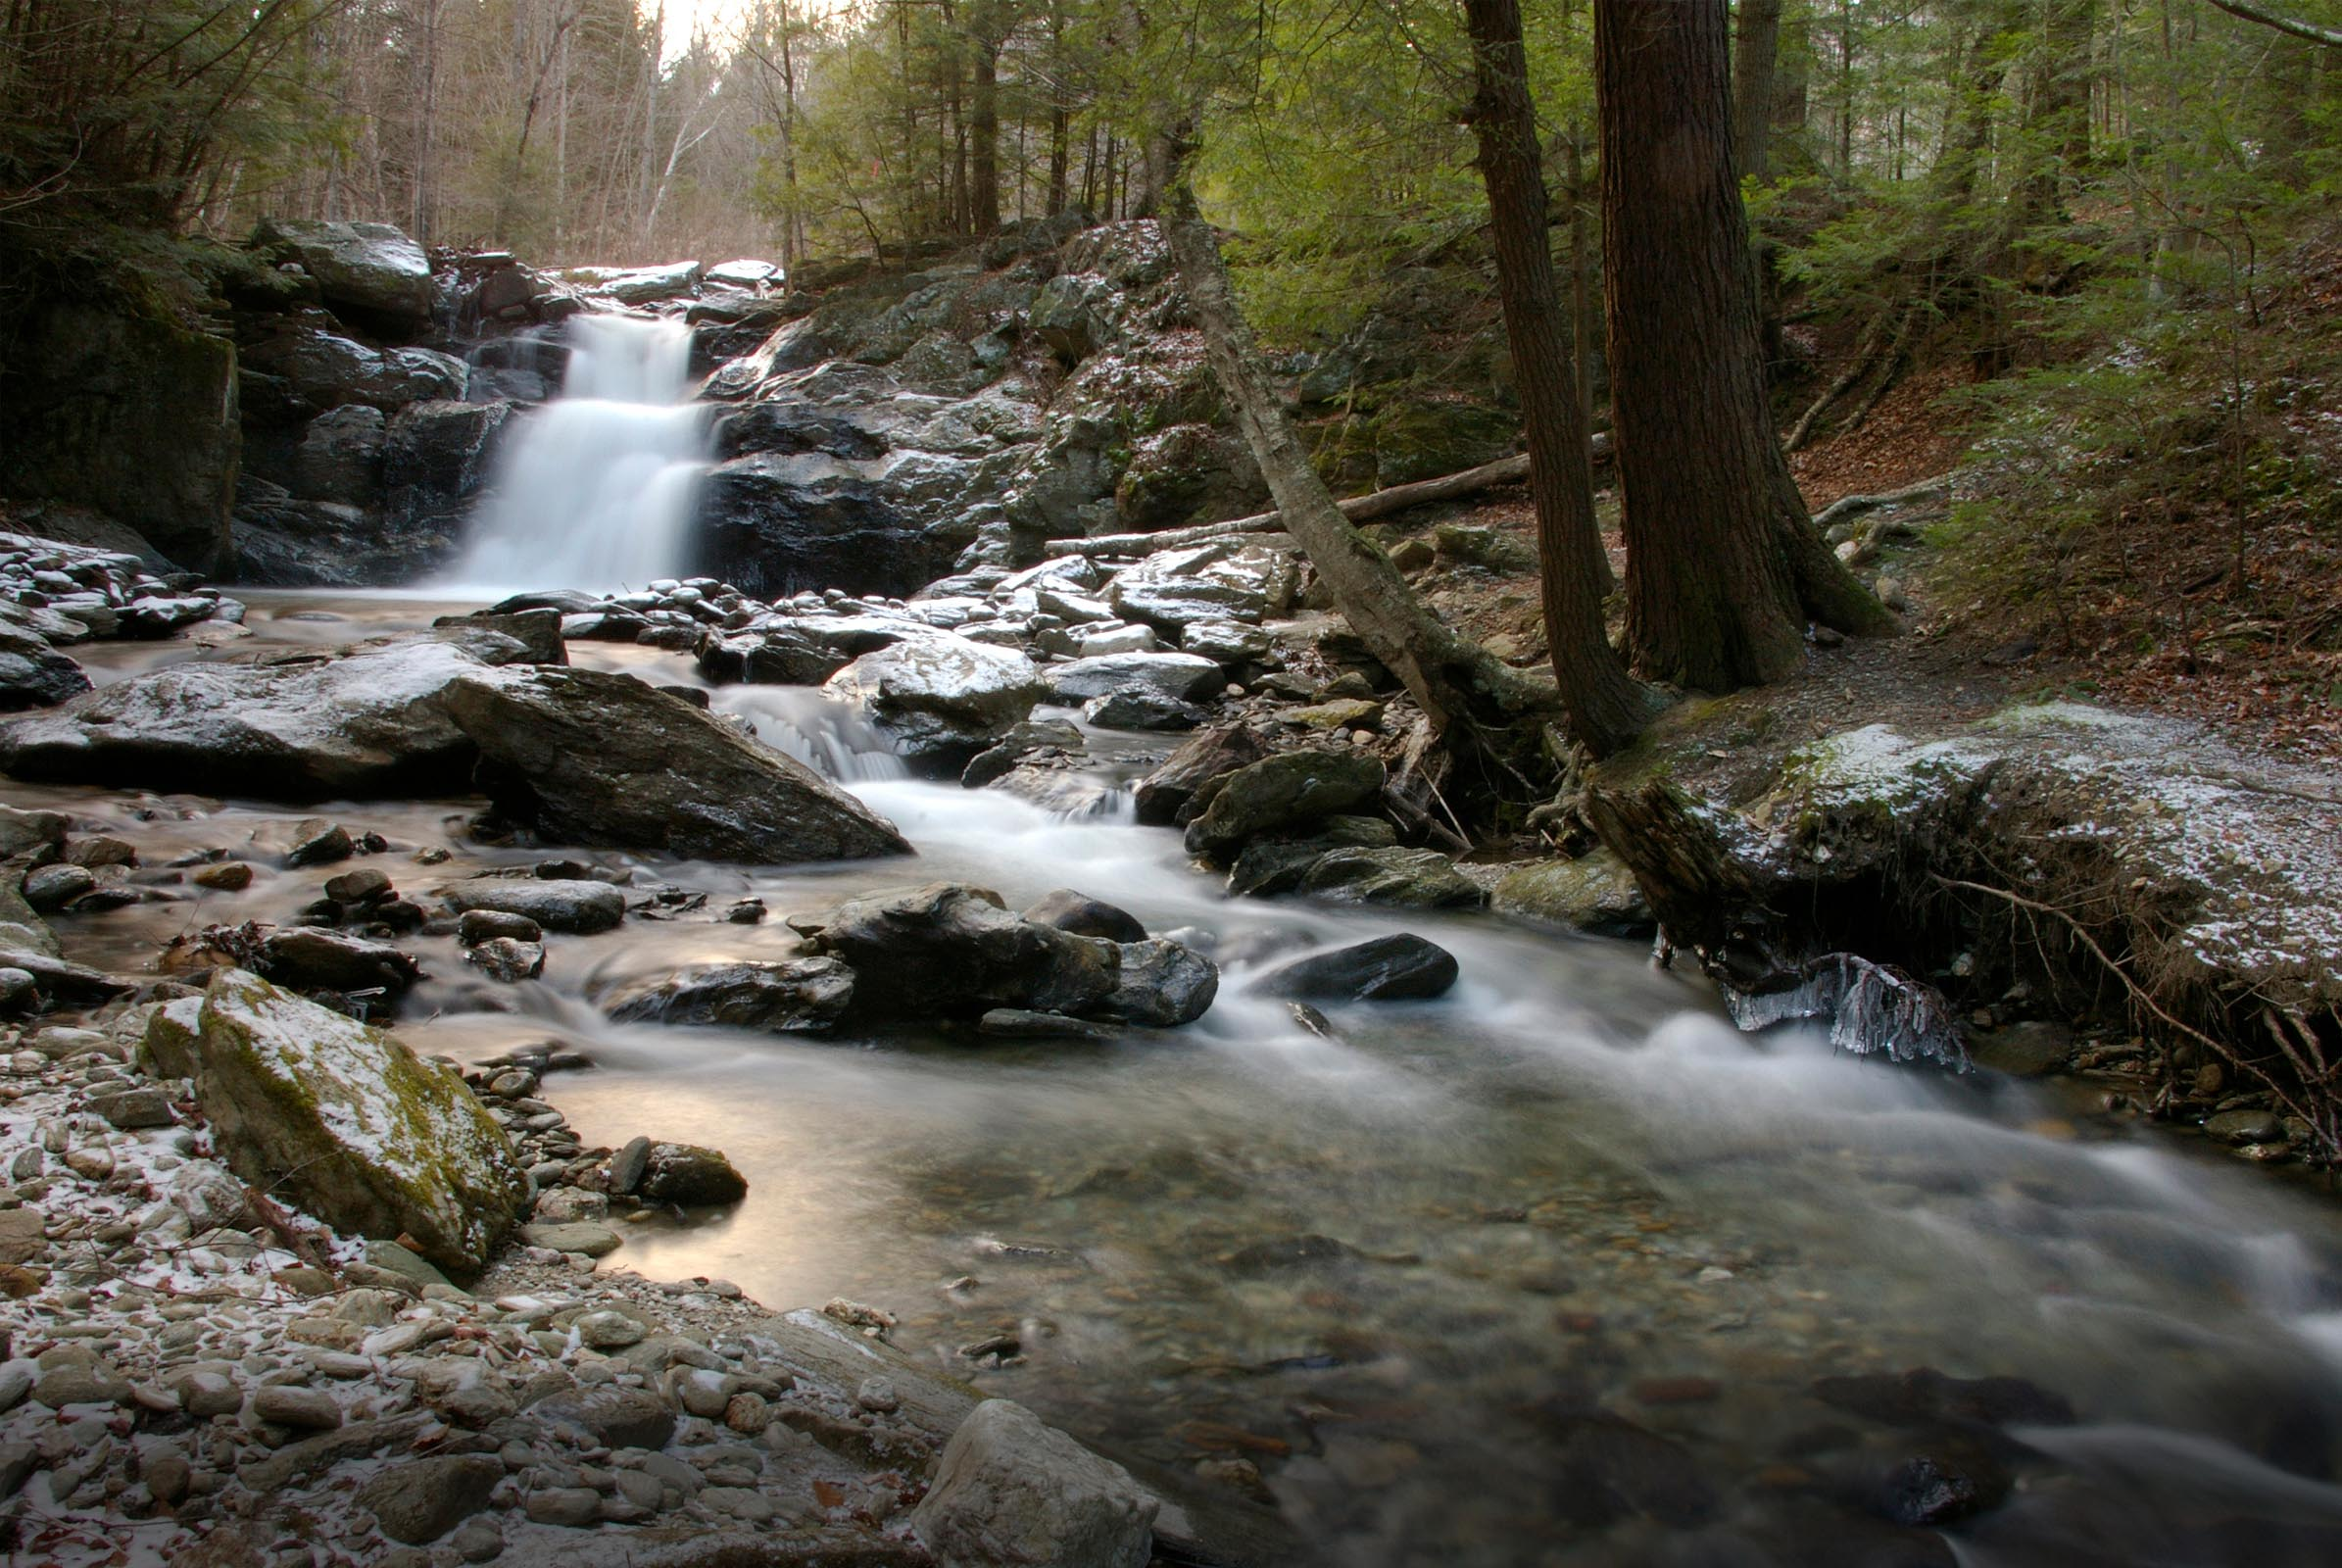 Peck's Brook at Greylock Glen